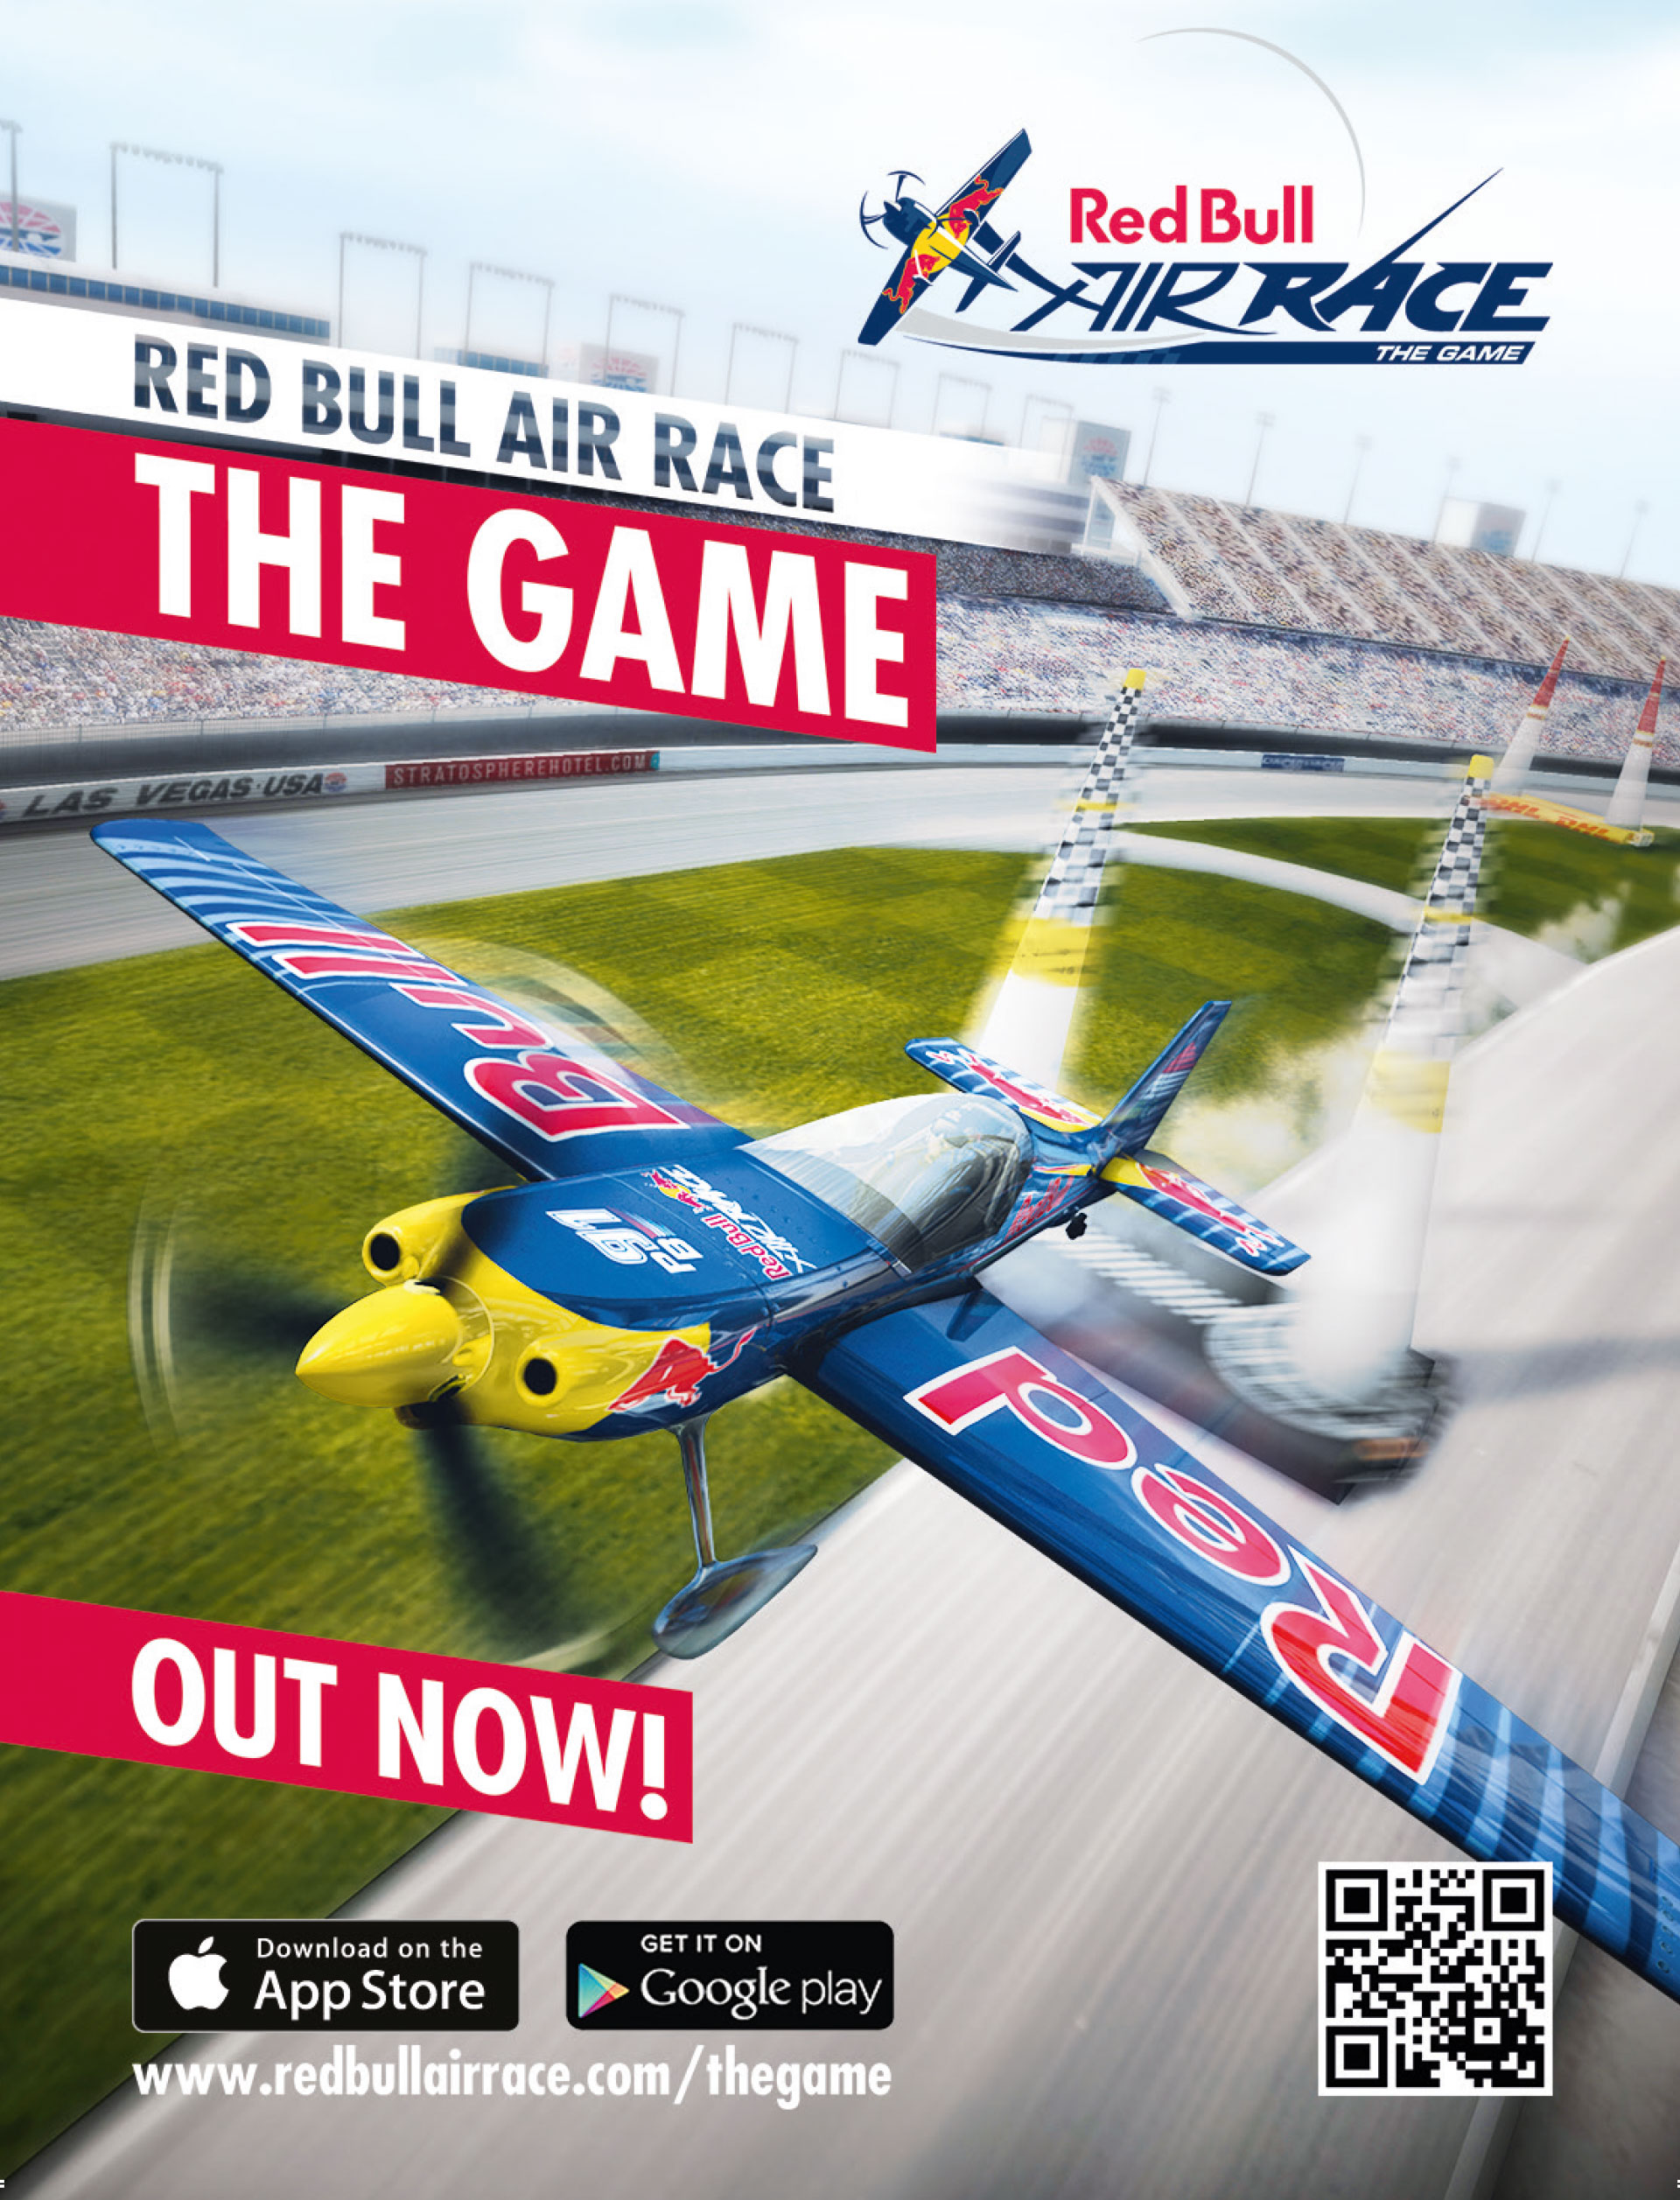 Red Bull Air Race Anzeige Destination Designdestination Design